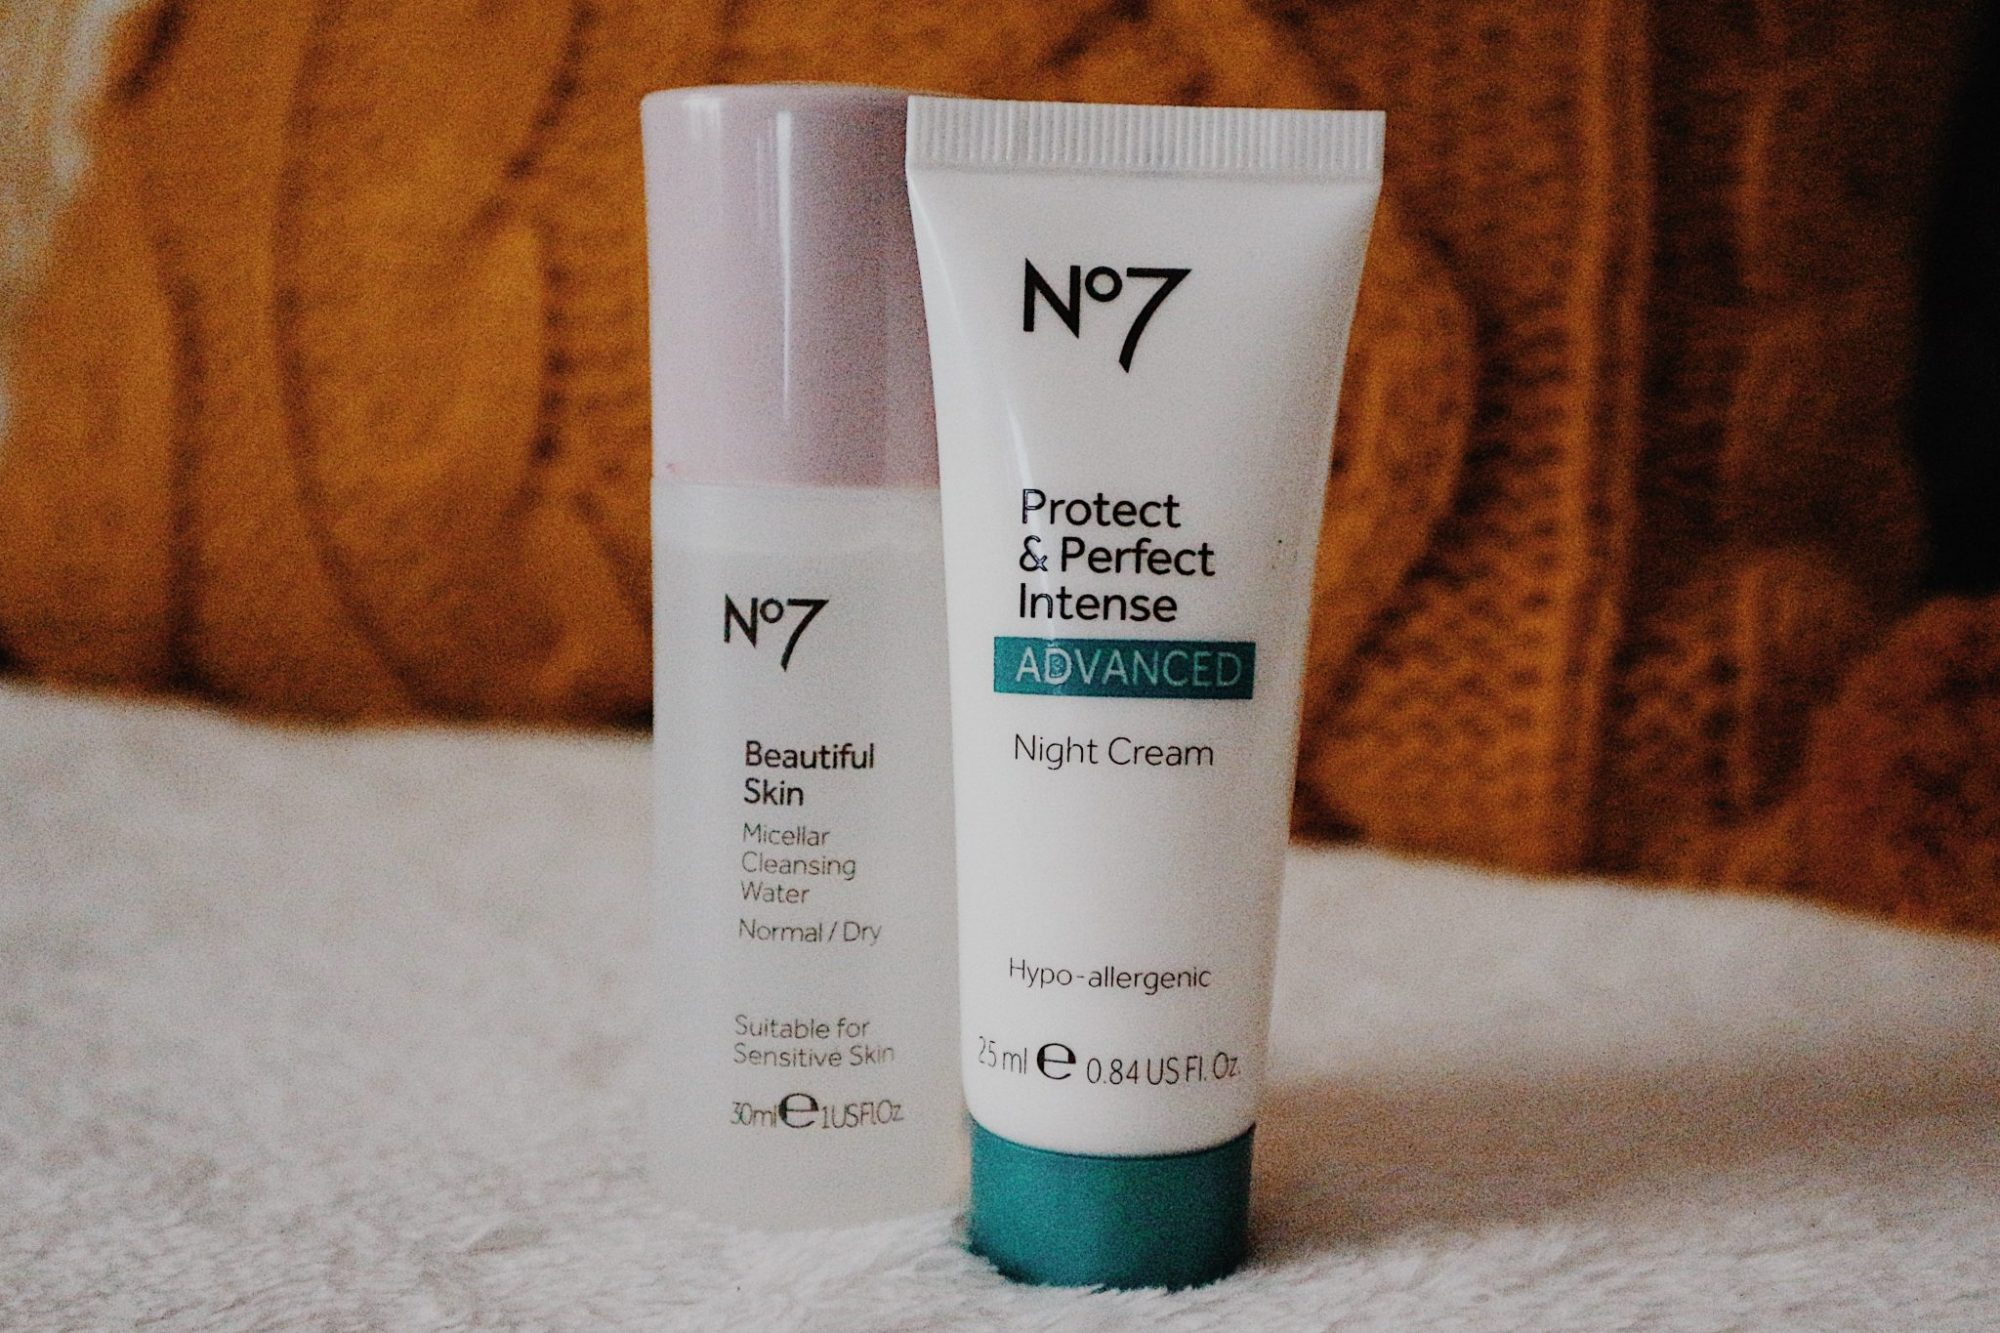 Mini No7 Beautiful Skin Micellar Cleansing Water + Protect and Perfect Intense Advanced Night Cream